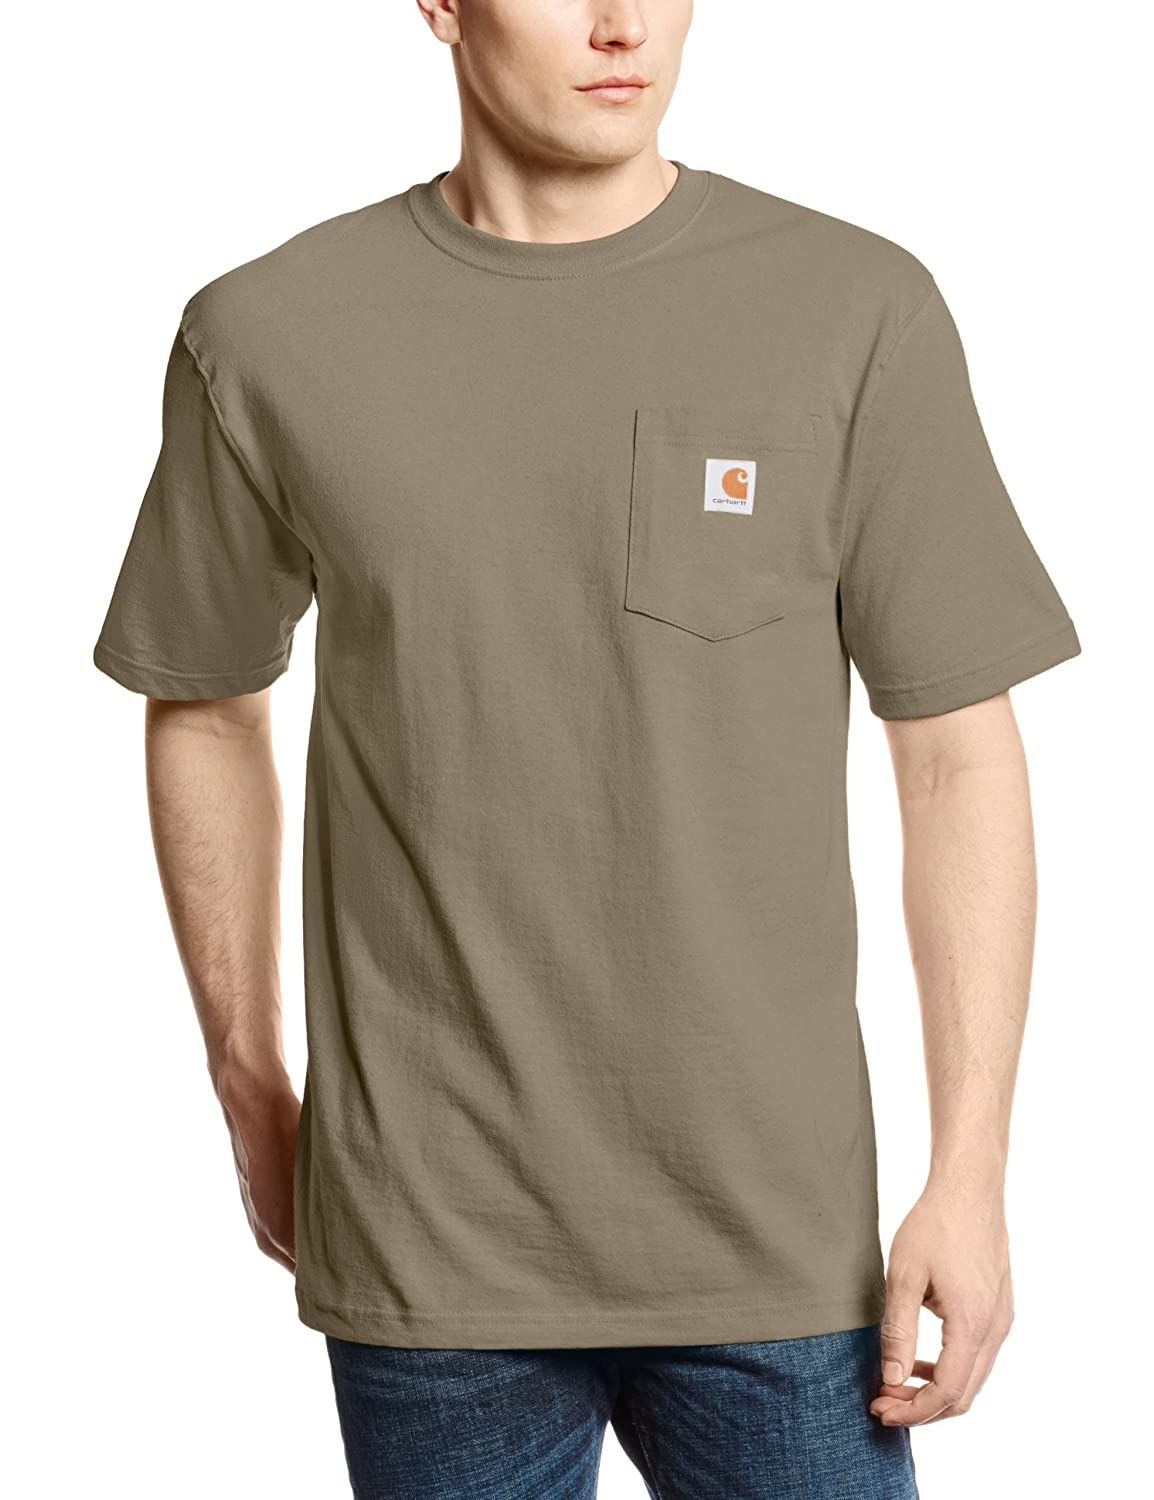 Carhartt men 39 s workwear pocket short sleeve t shirt for Tahari t shirt mens